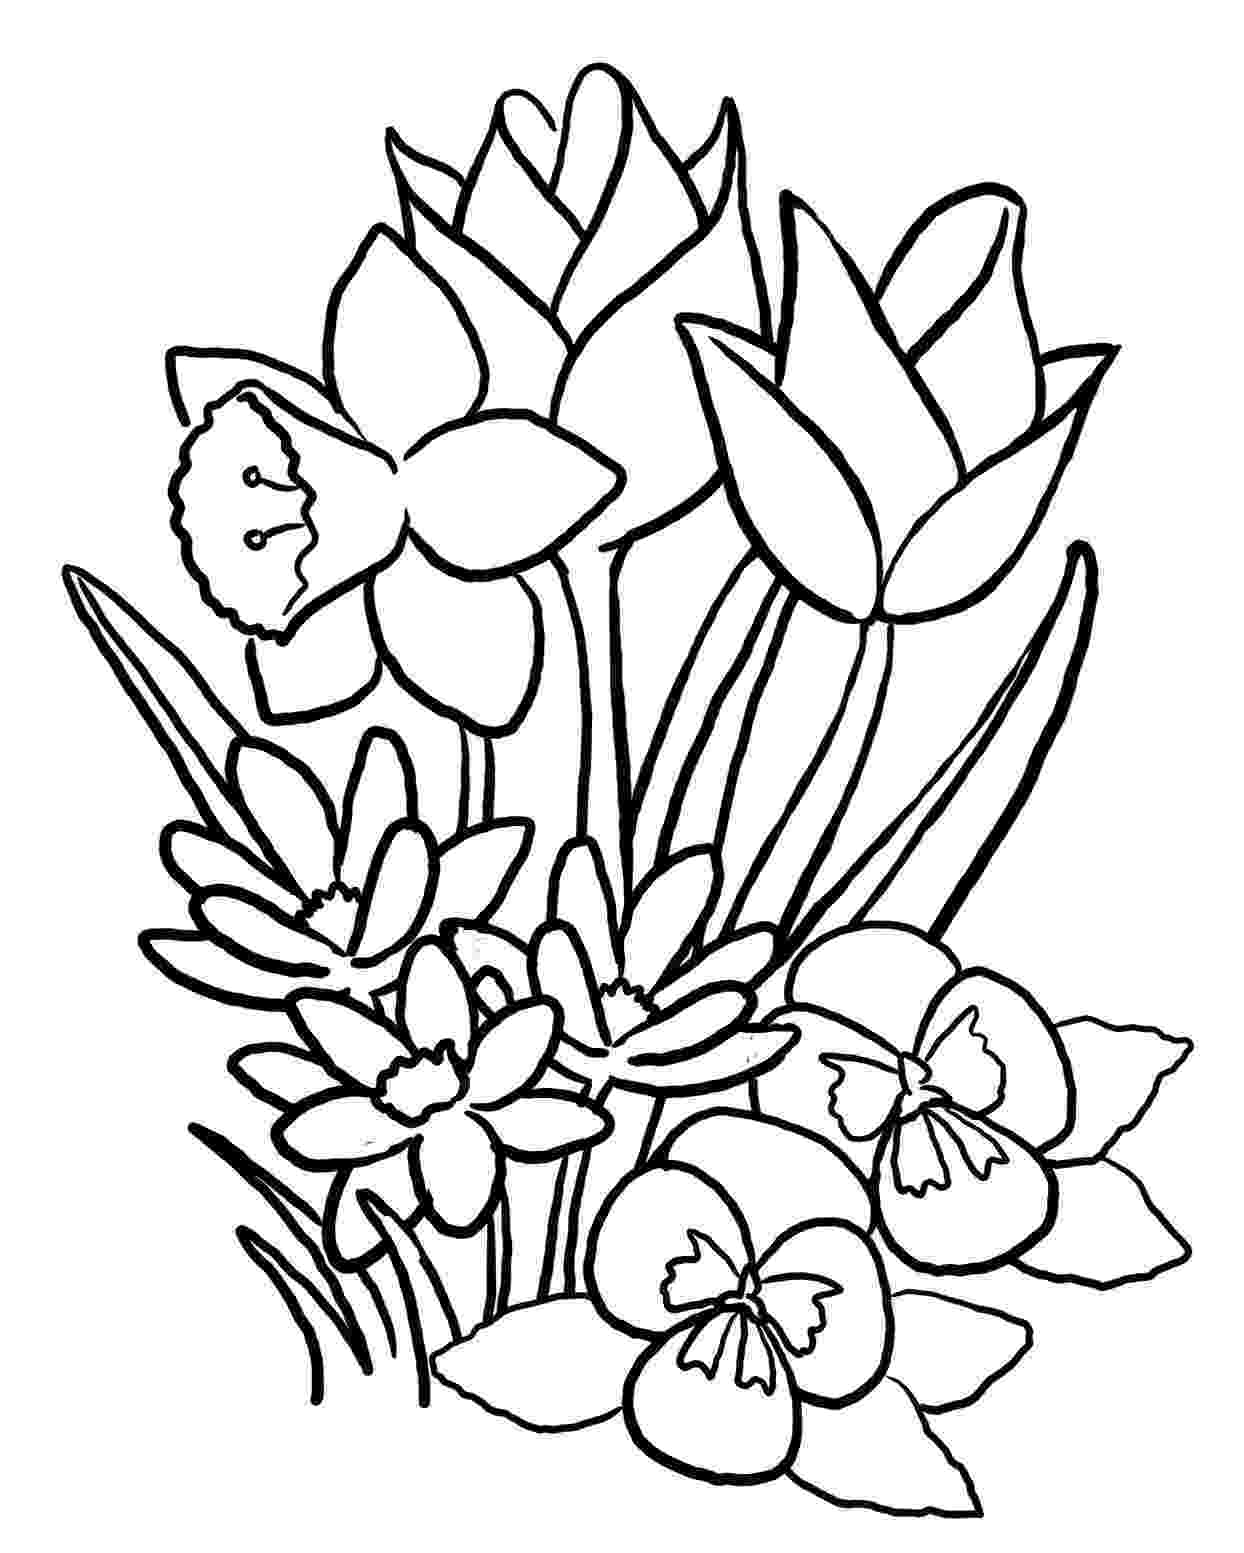 flower colouring pages to print free printable flower coloring pages for kids best pages colouring to flower print